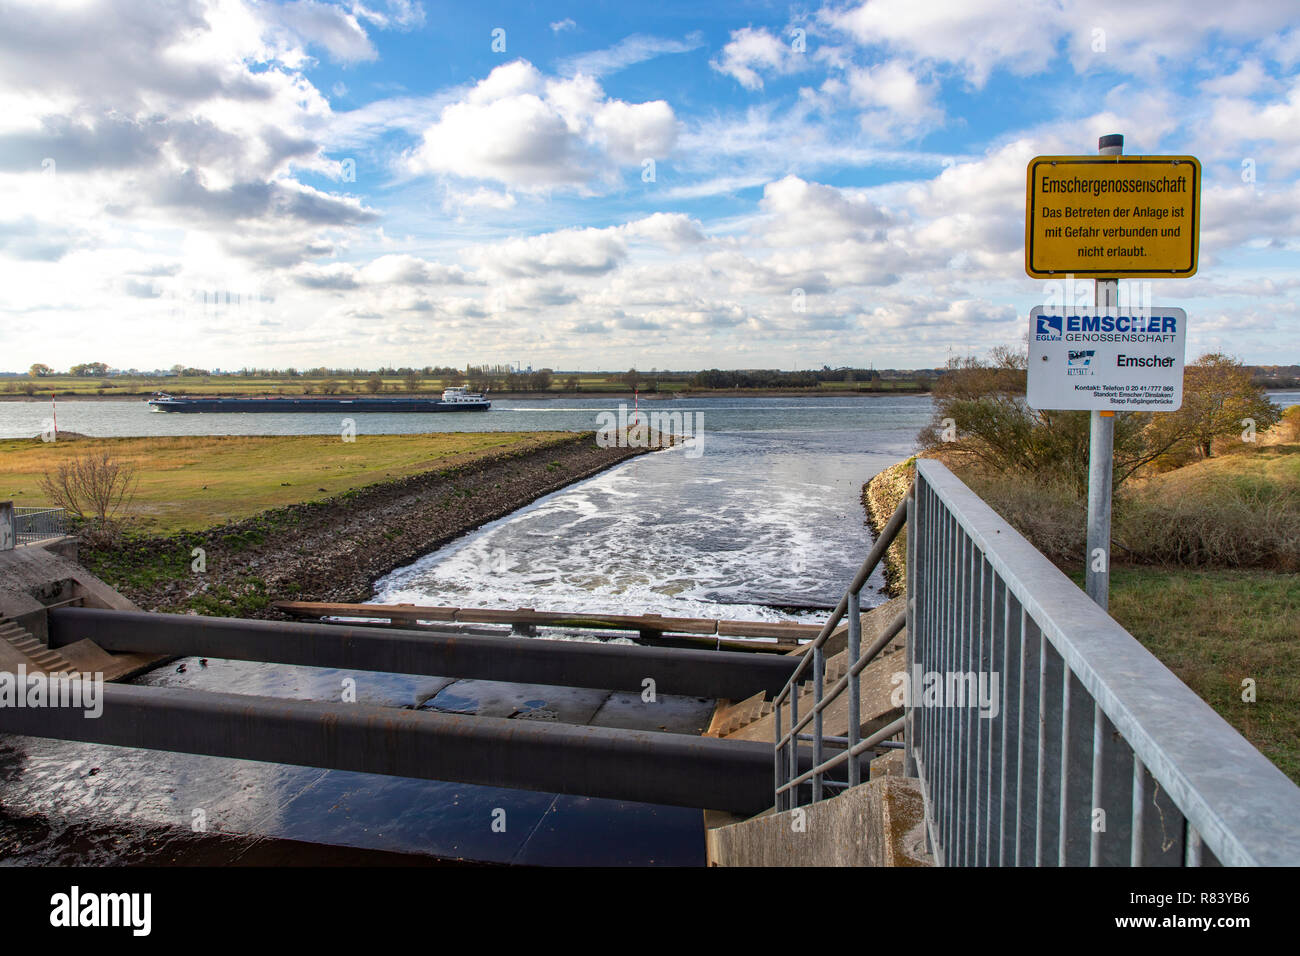 The mouth of the river Emscher in the Rhine near Dinslaken, next door is the new, renatured Emscher estuary lea, - Stock Image